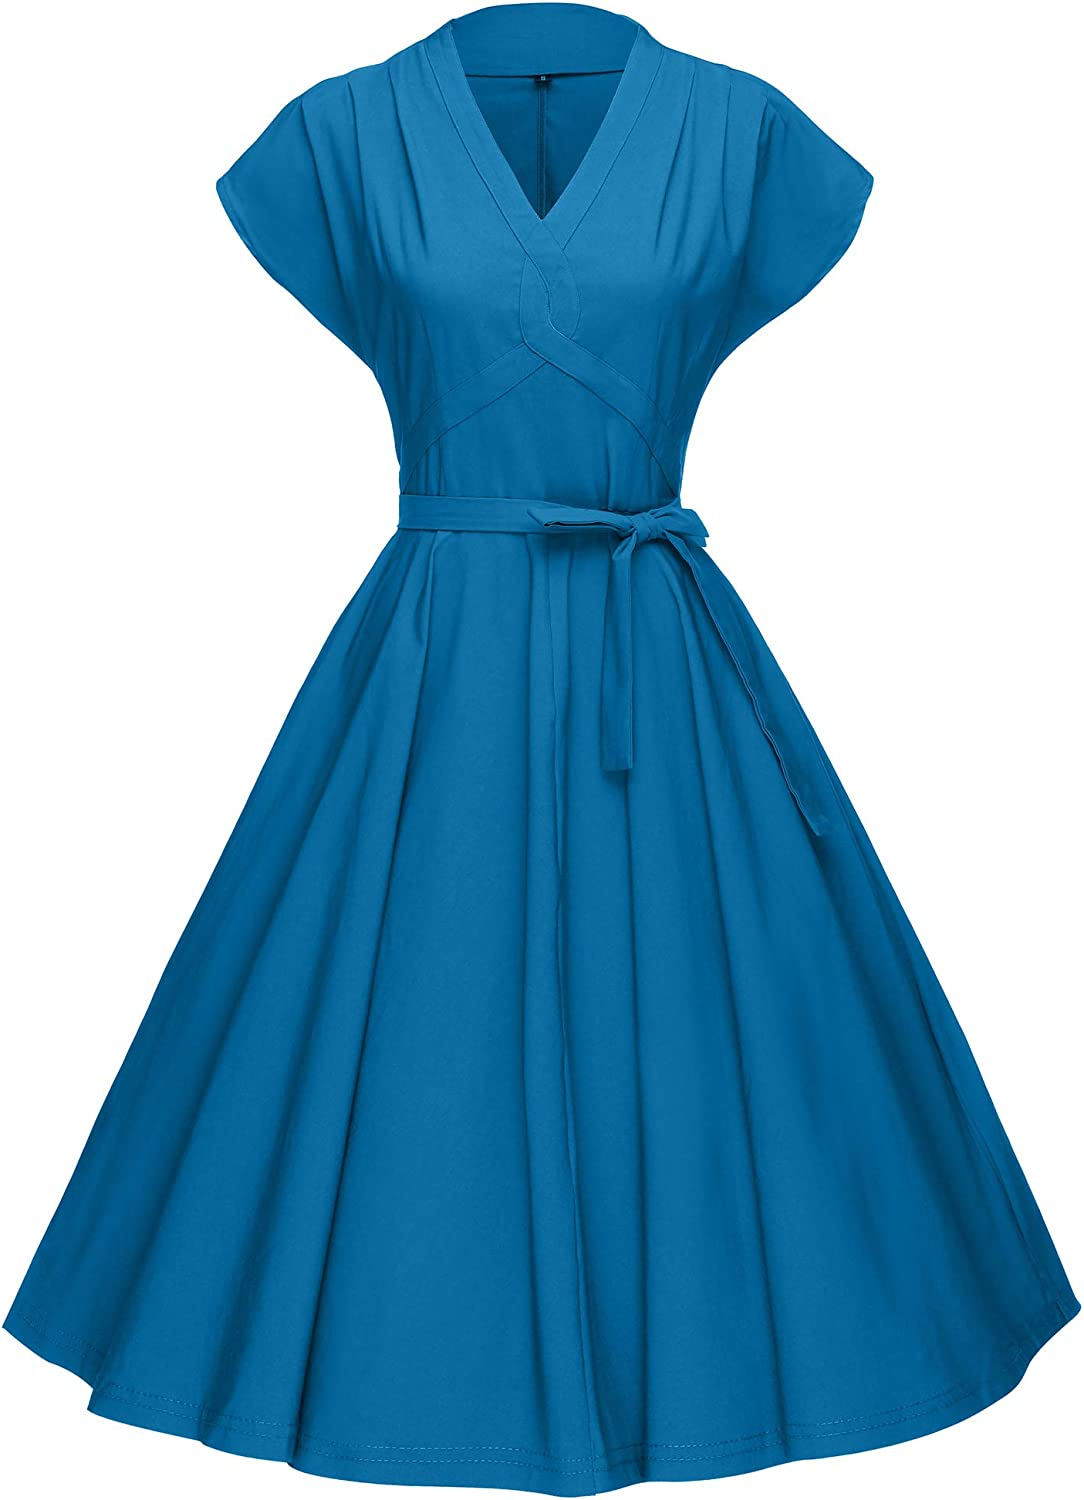 1950s Housewife Dress | 50s Day Dresses GownTown Womens 1950s Vintage Rockabilly Swing Stretchy Dress $32.98 AT vintagedancer.com